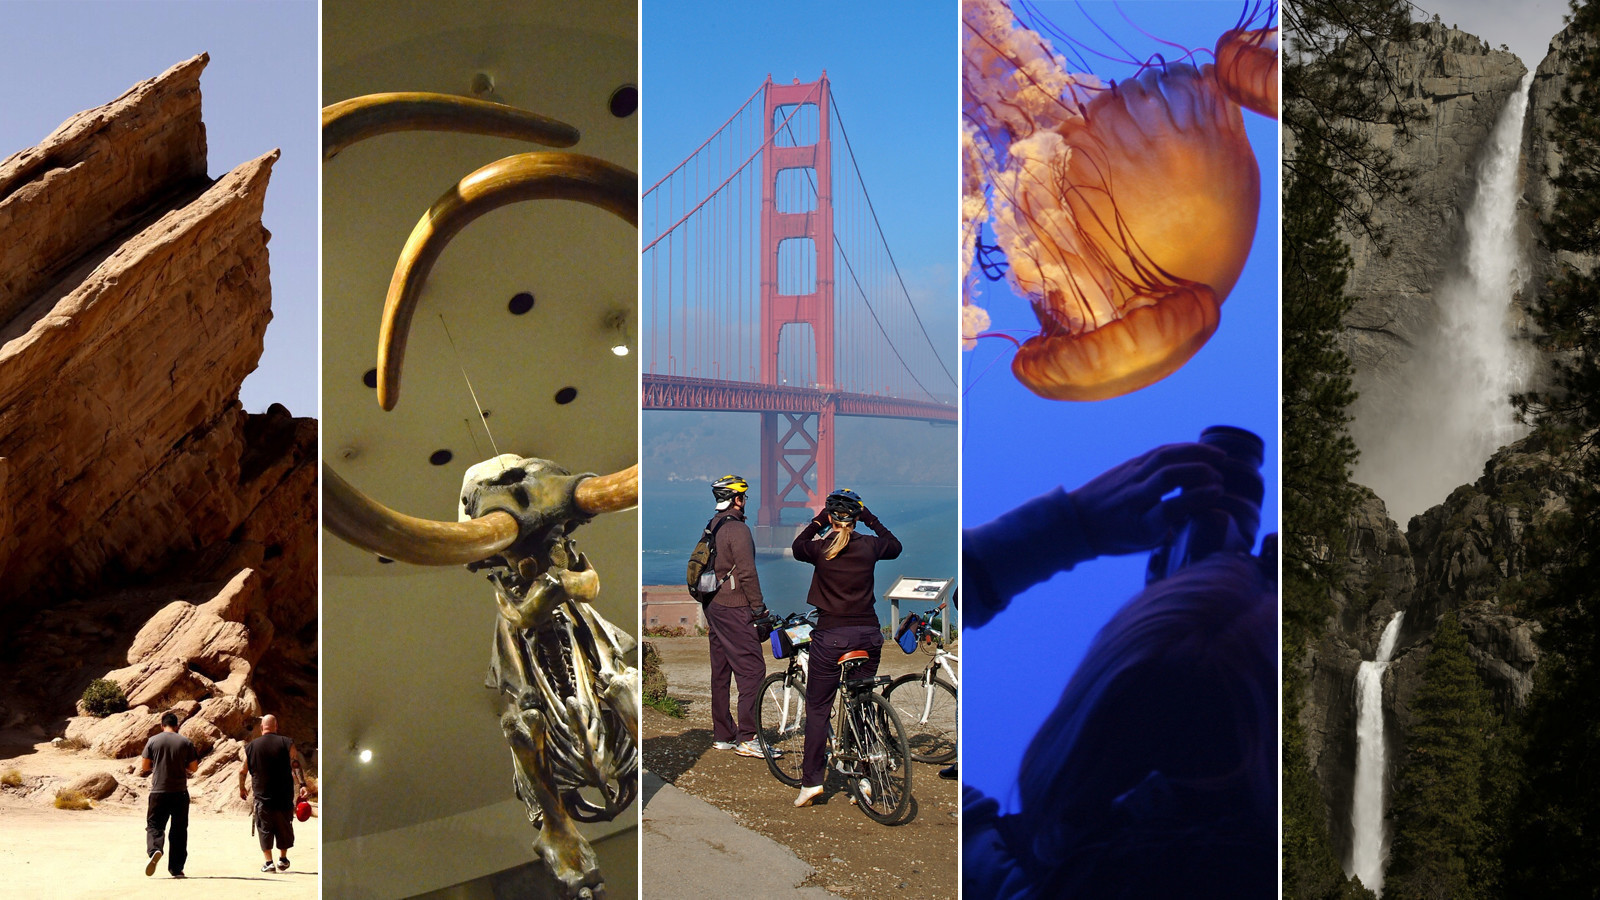 Chicago Style >> Things to do in California: The Best Adventures & Experiences - Chicago Tribune